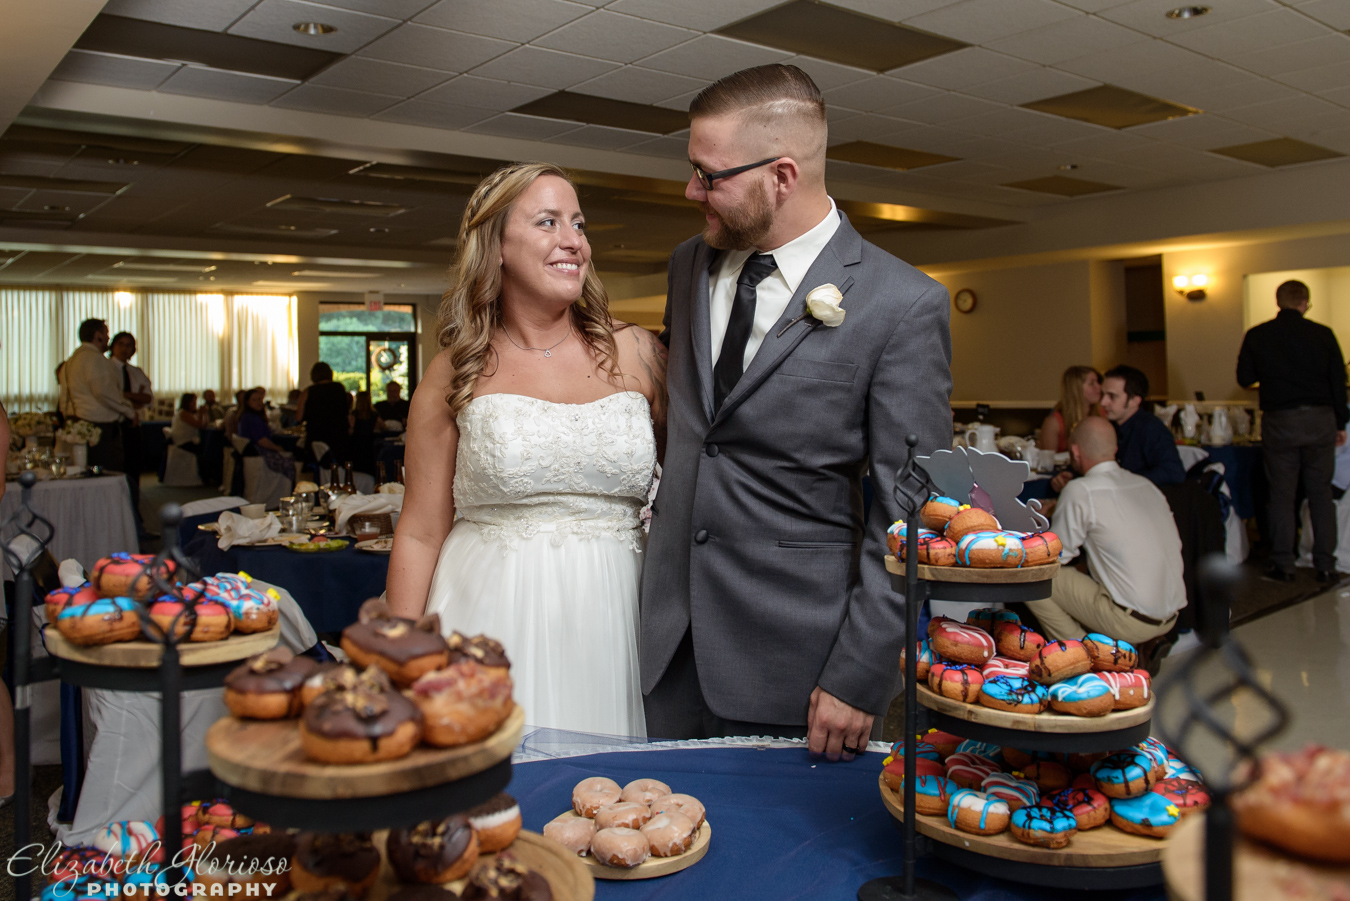 Zakovec_Wedding_Glorioso_Photography_Cleveland-141